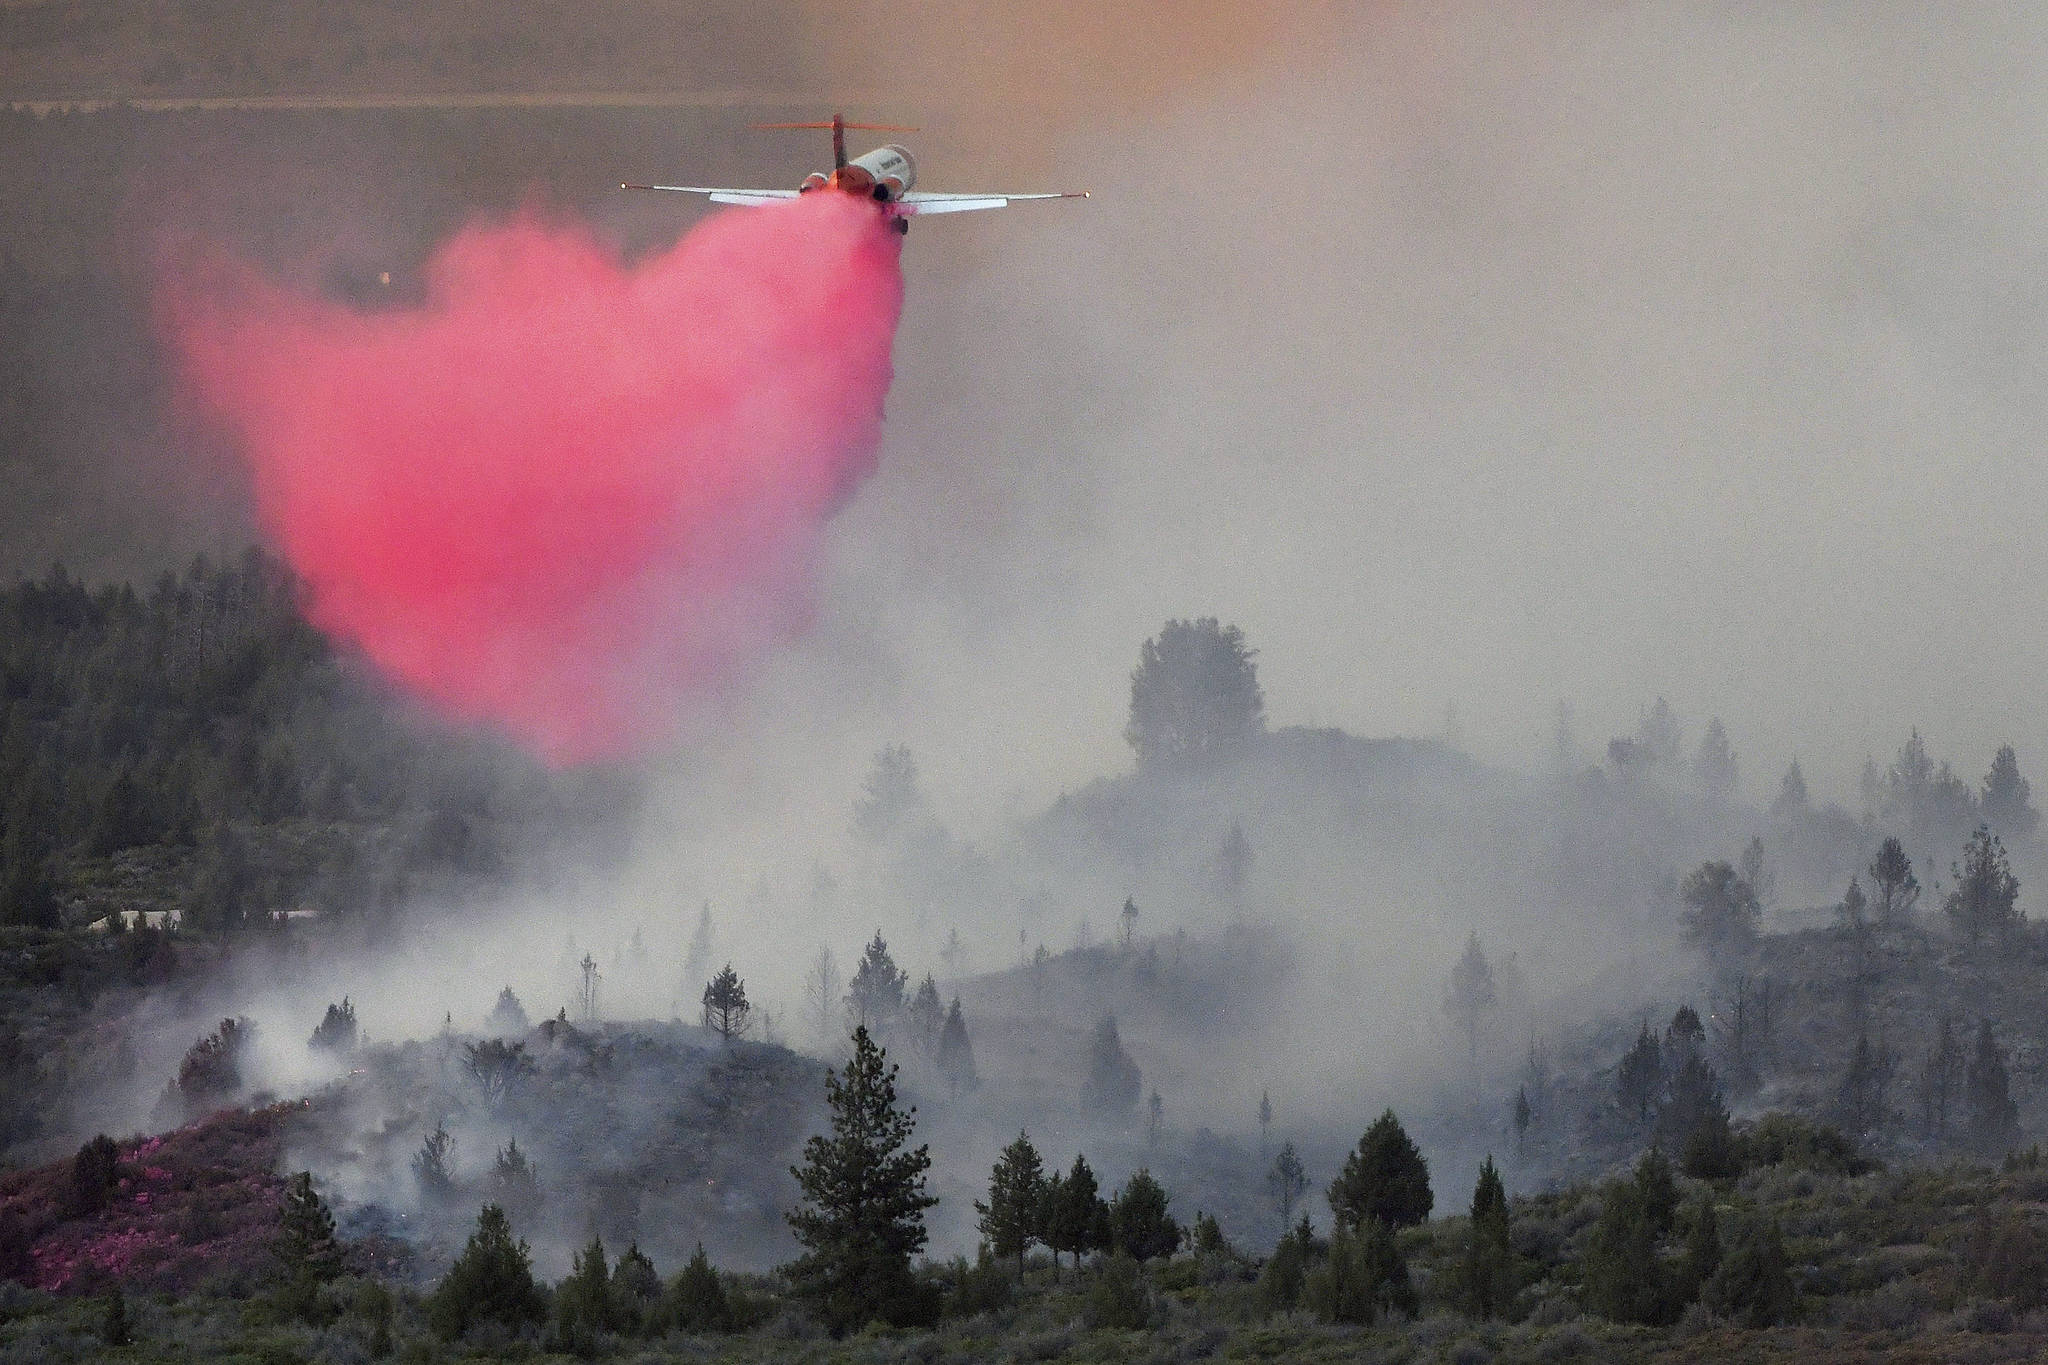 In this Monday, June 28, 2021, photo Tanker 105, an MD-87 aircraft operated by Erickson Aero Tanker of Hillsboro, Ore., drops retardant in an effort to stop the advancing Lava Fire northeast of Weed, Calif. A wildfire that has put thousands of people under evacuation orders in Northern California grew substantially but firefighters had some success against the flames, authorities said Wednesday, June 30. Burning in the shadow of the towering Mount Shasta volcano, the Lava Fire was ignited by lightning last week. (Scott Stoddard/Grants Pass Daily Courier via AP)